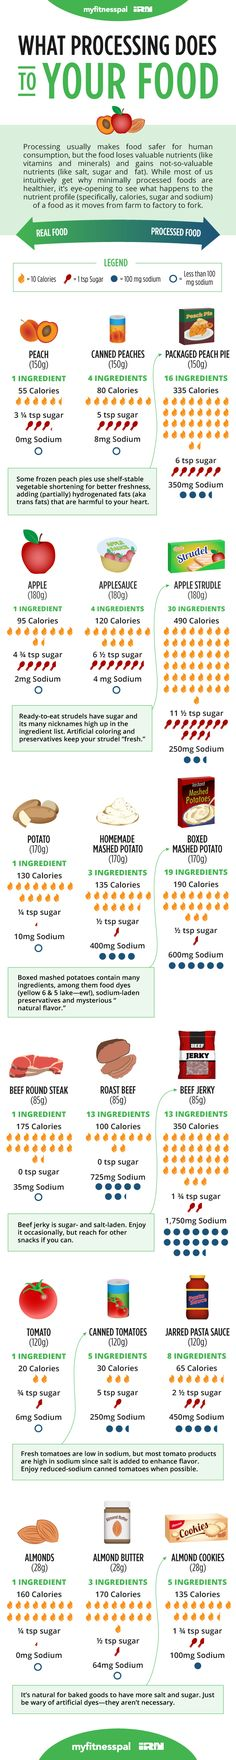 Best Kitchen Scales For Counting Macros